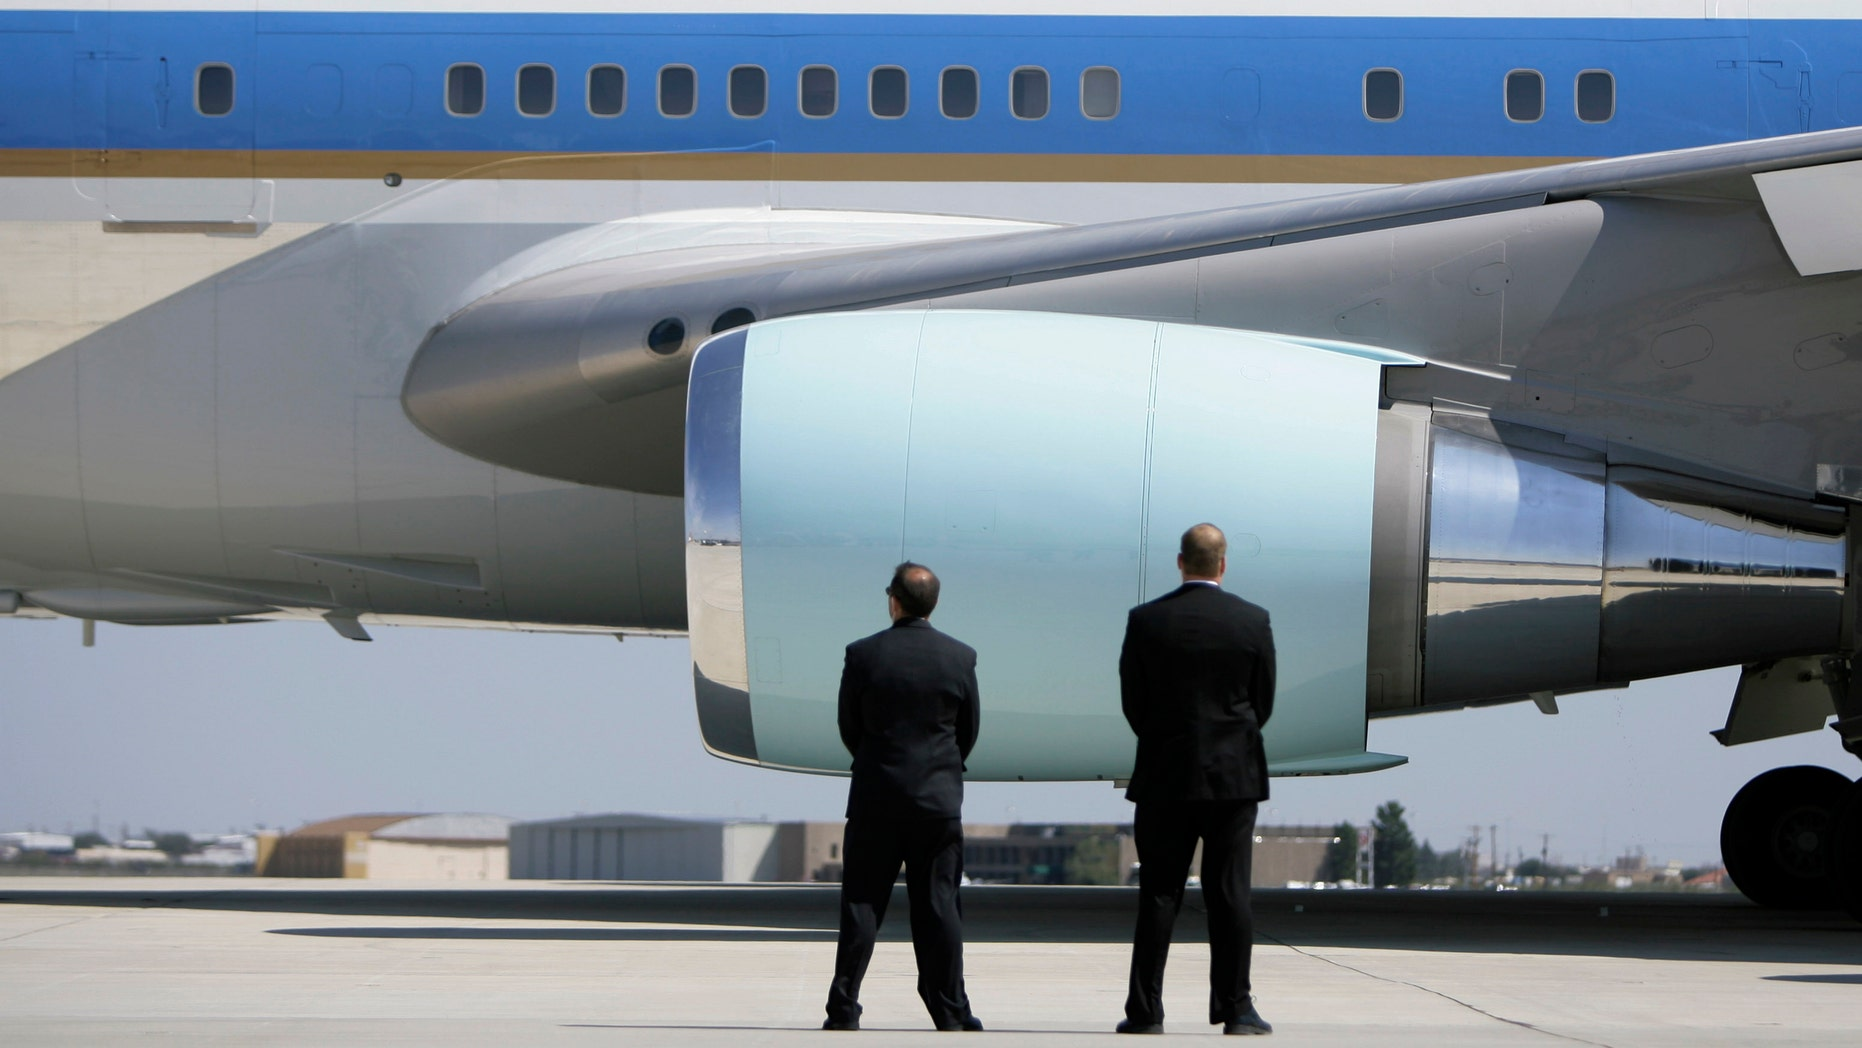 In this Saturday, Oct. 4, 2008 photo, Secret Service agents watch as Air Force One departs Midland International Airport with President Bush and first lady Laura Bush aboard in Midland, Texas. (AP Photo/Matt Slocum)